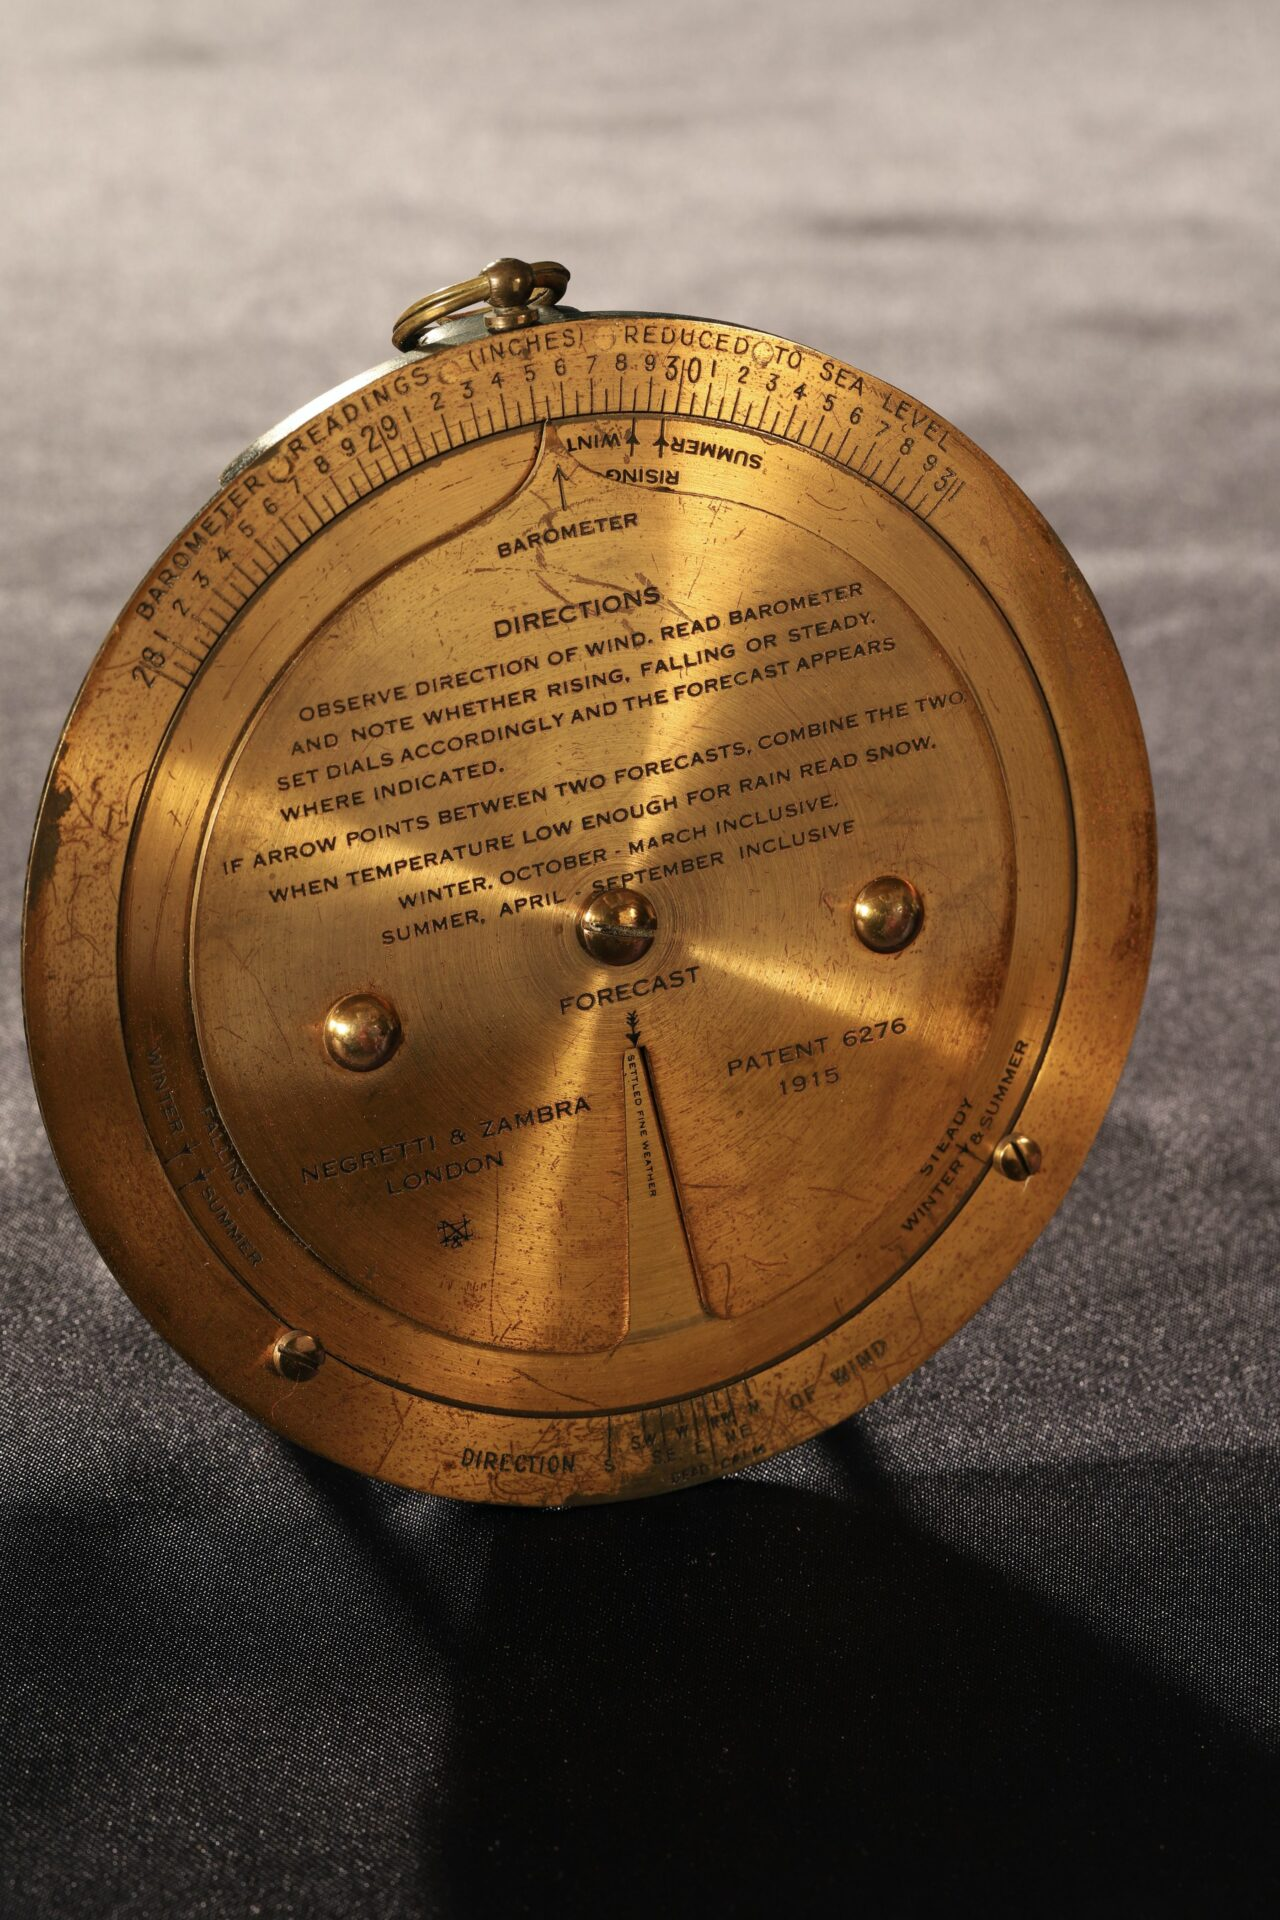 Image of brass forecaster from Negretti & Zambra Forecasting Aneroid No 9071 c1920 taken from above left